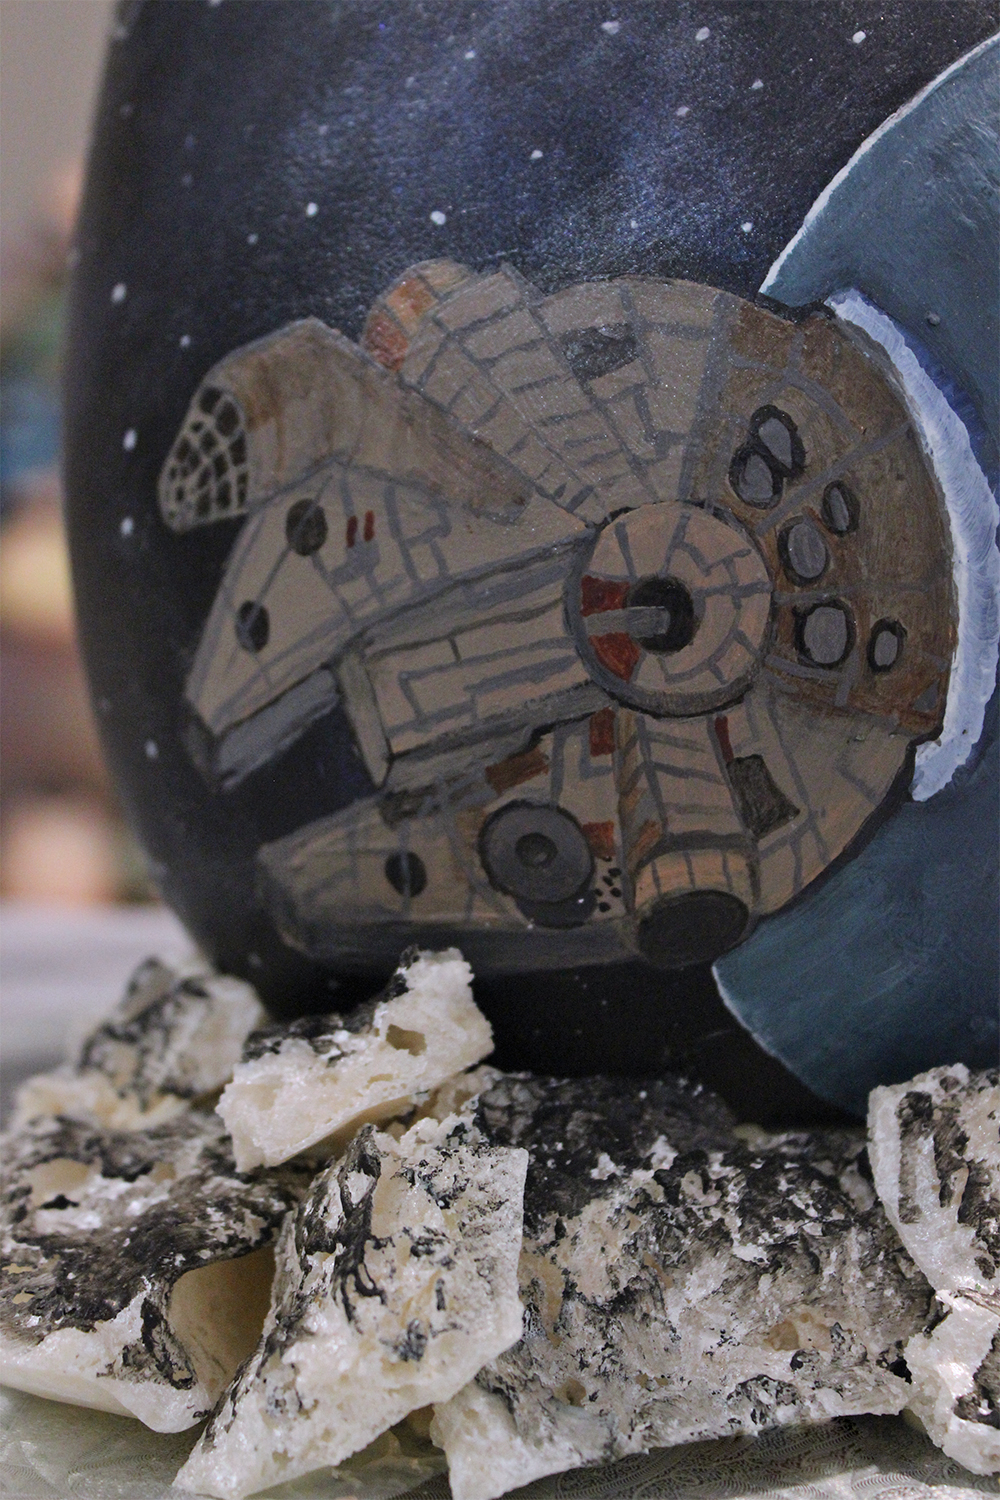 Star Wars Easter Egg at Disney's Contemporary Resort at Walt Disney World